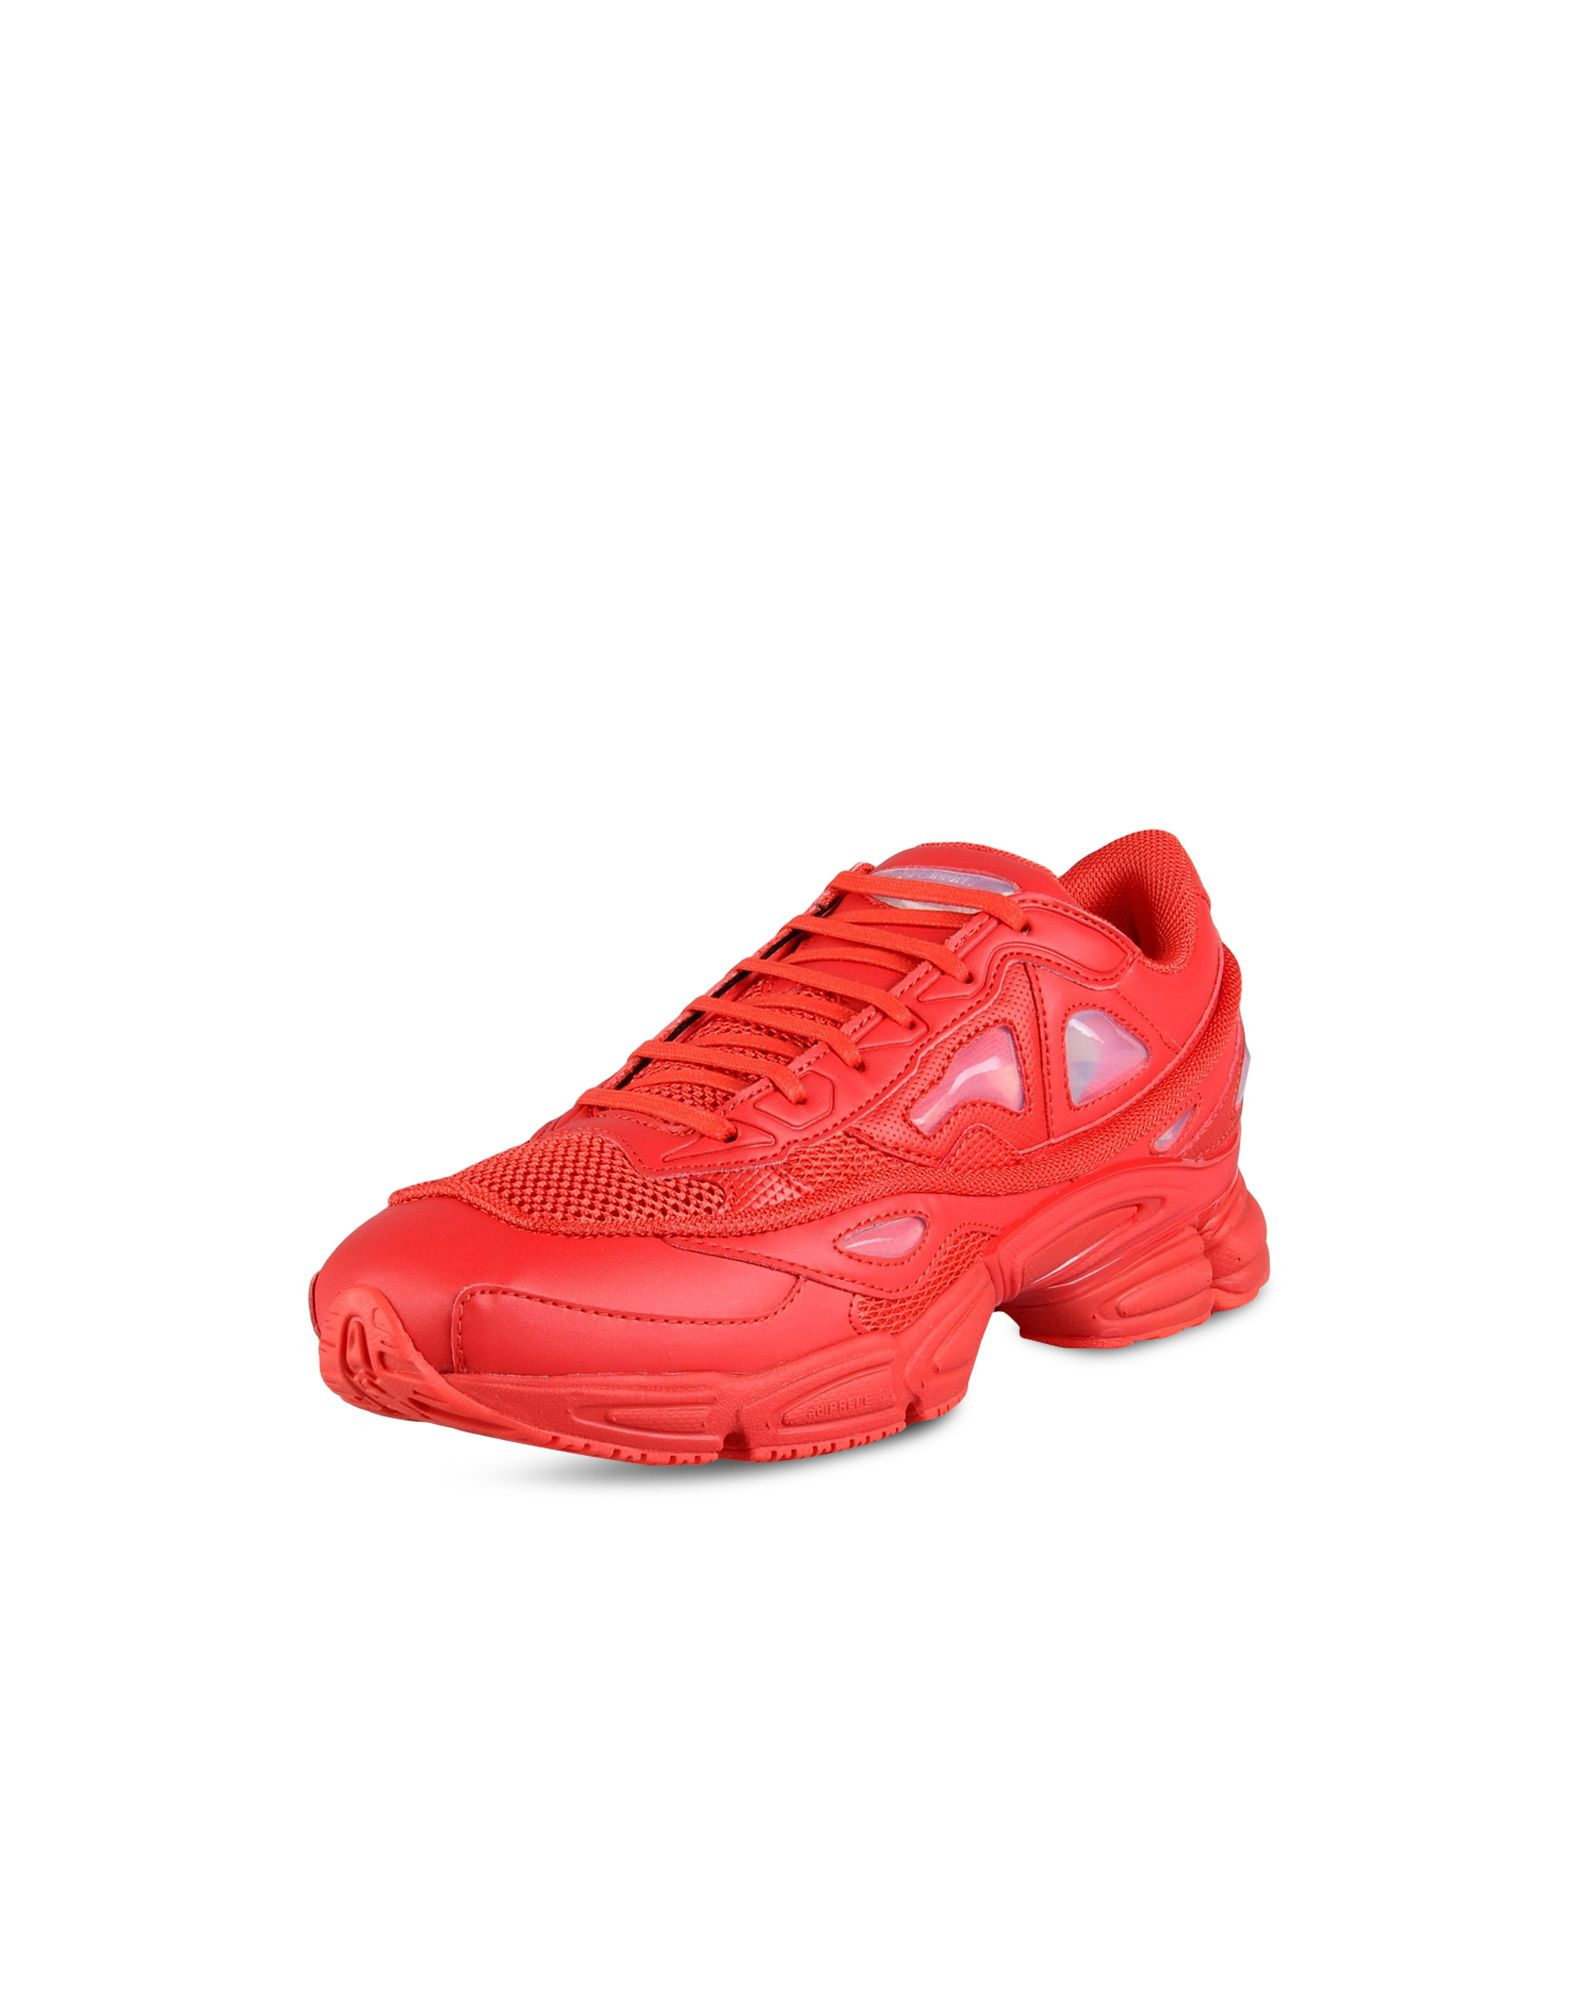 sports shoes e4a95 78594 Raf Simons Ozweego 2 Sneakers   Adidas Y-3 Official Site